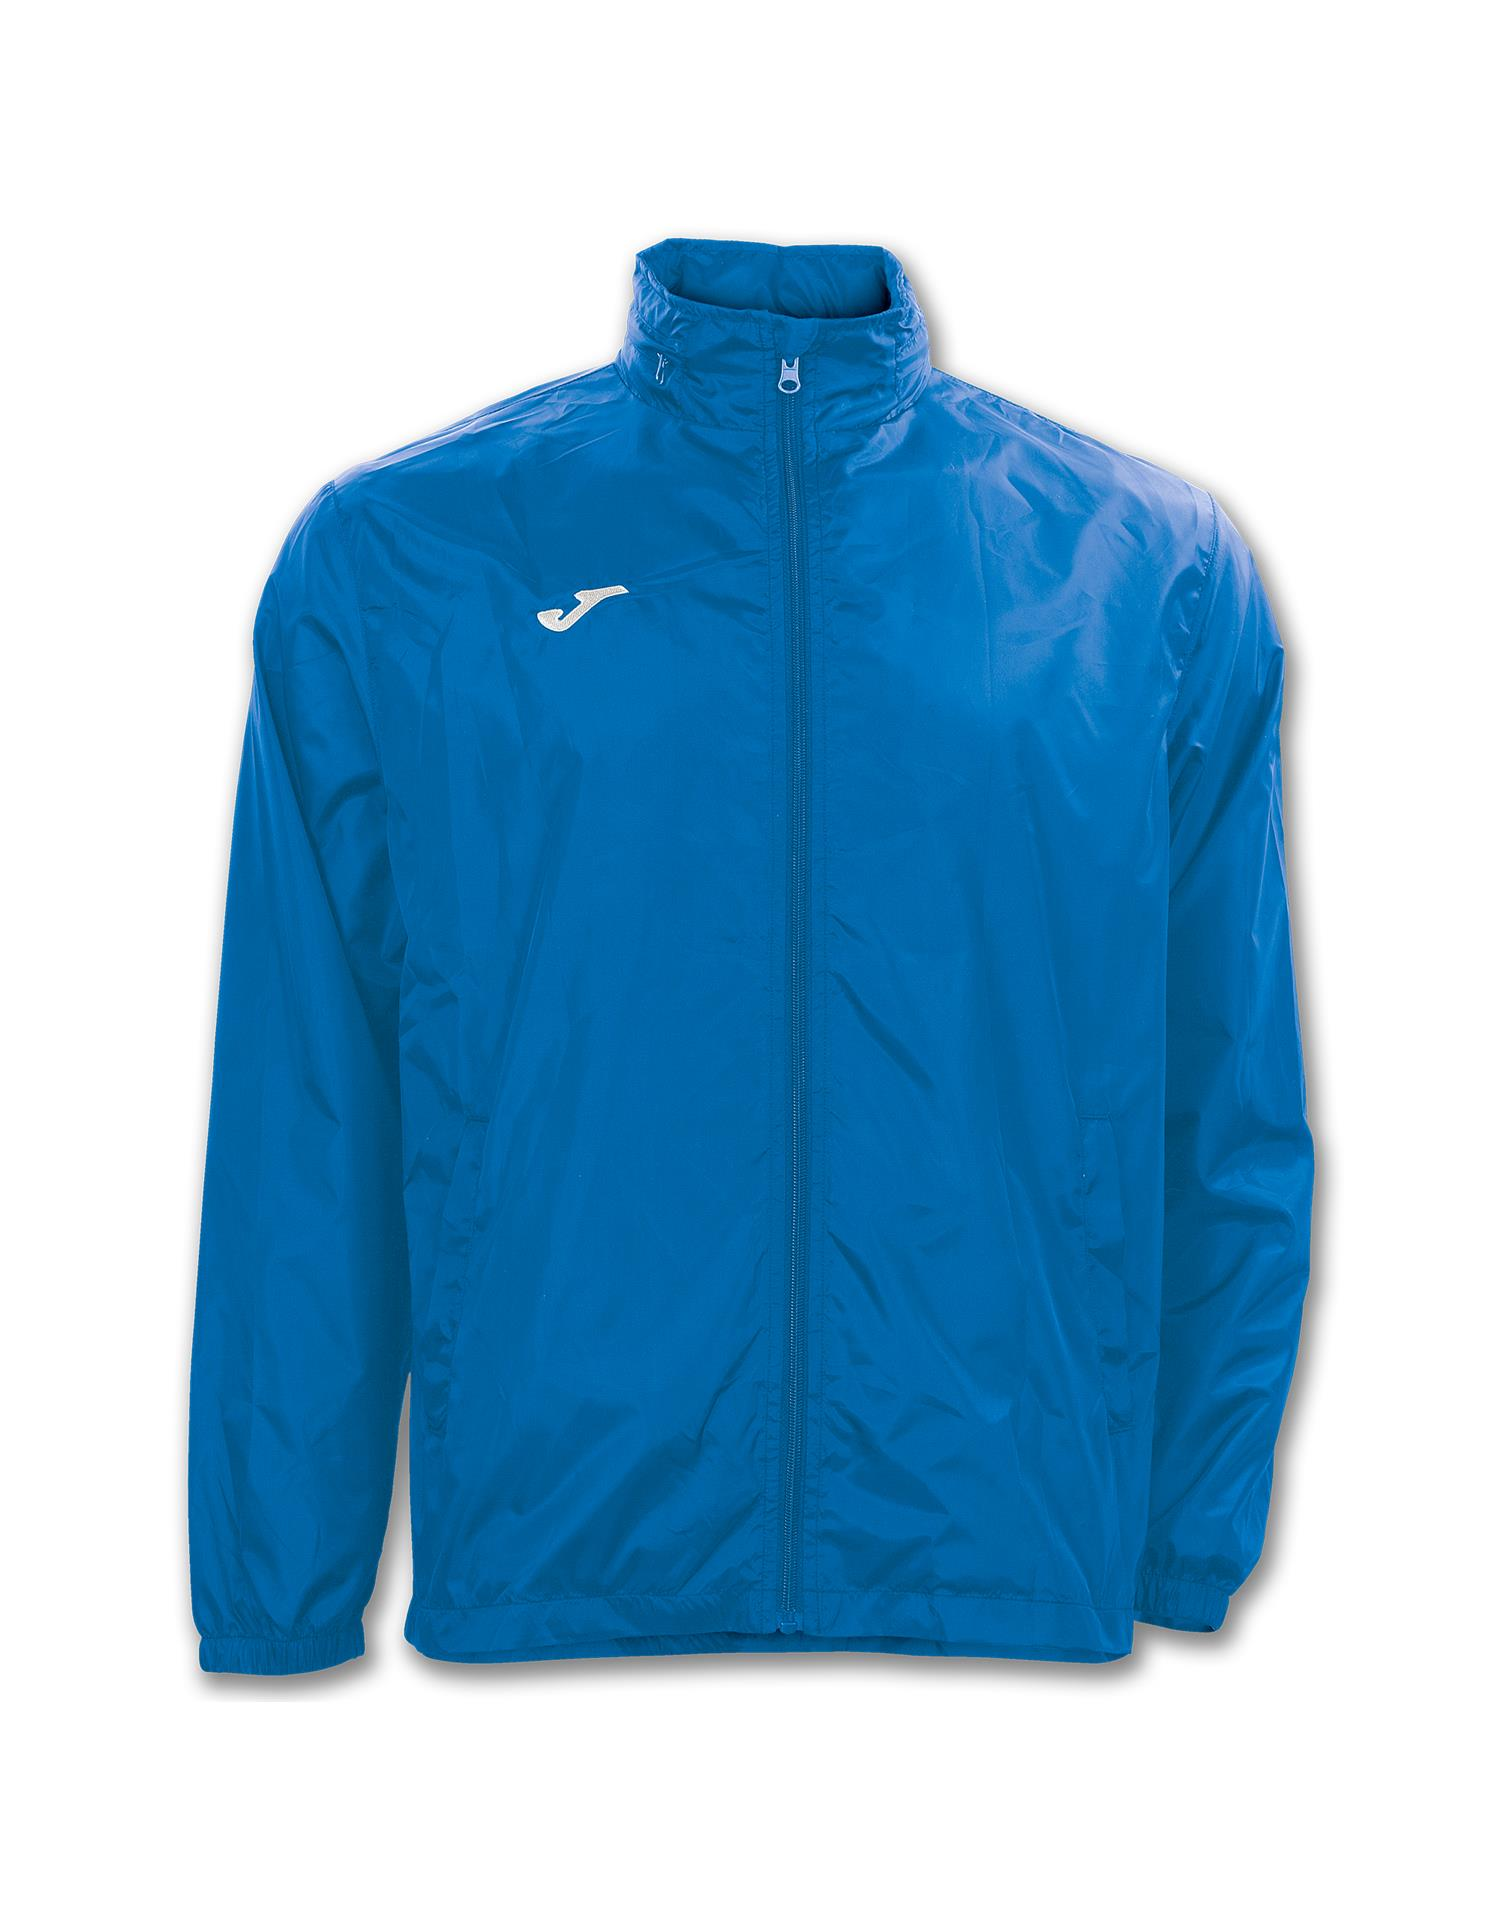 JOMA K-WAY IRIS CON CAPPUCCIO   (3XS - ROYAL)